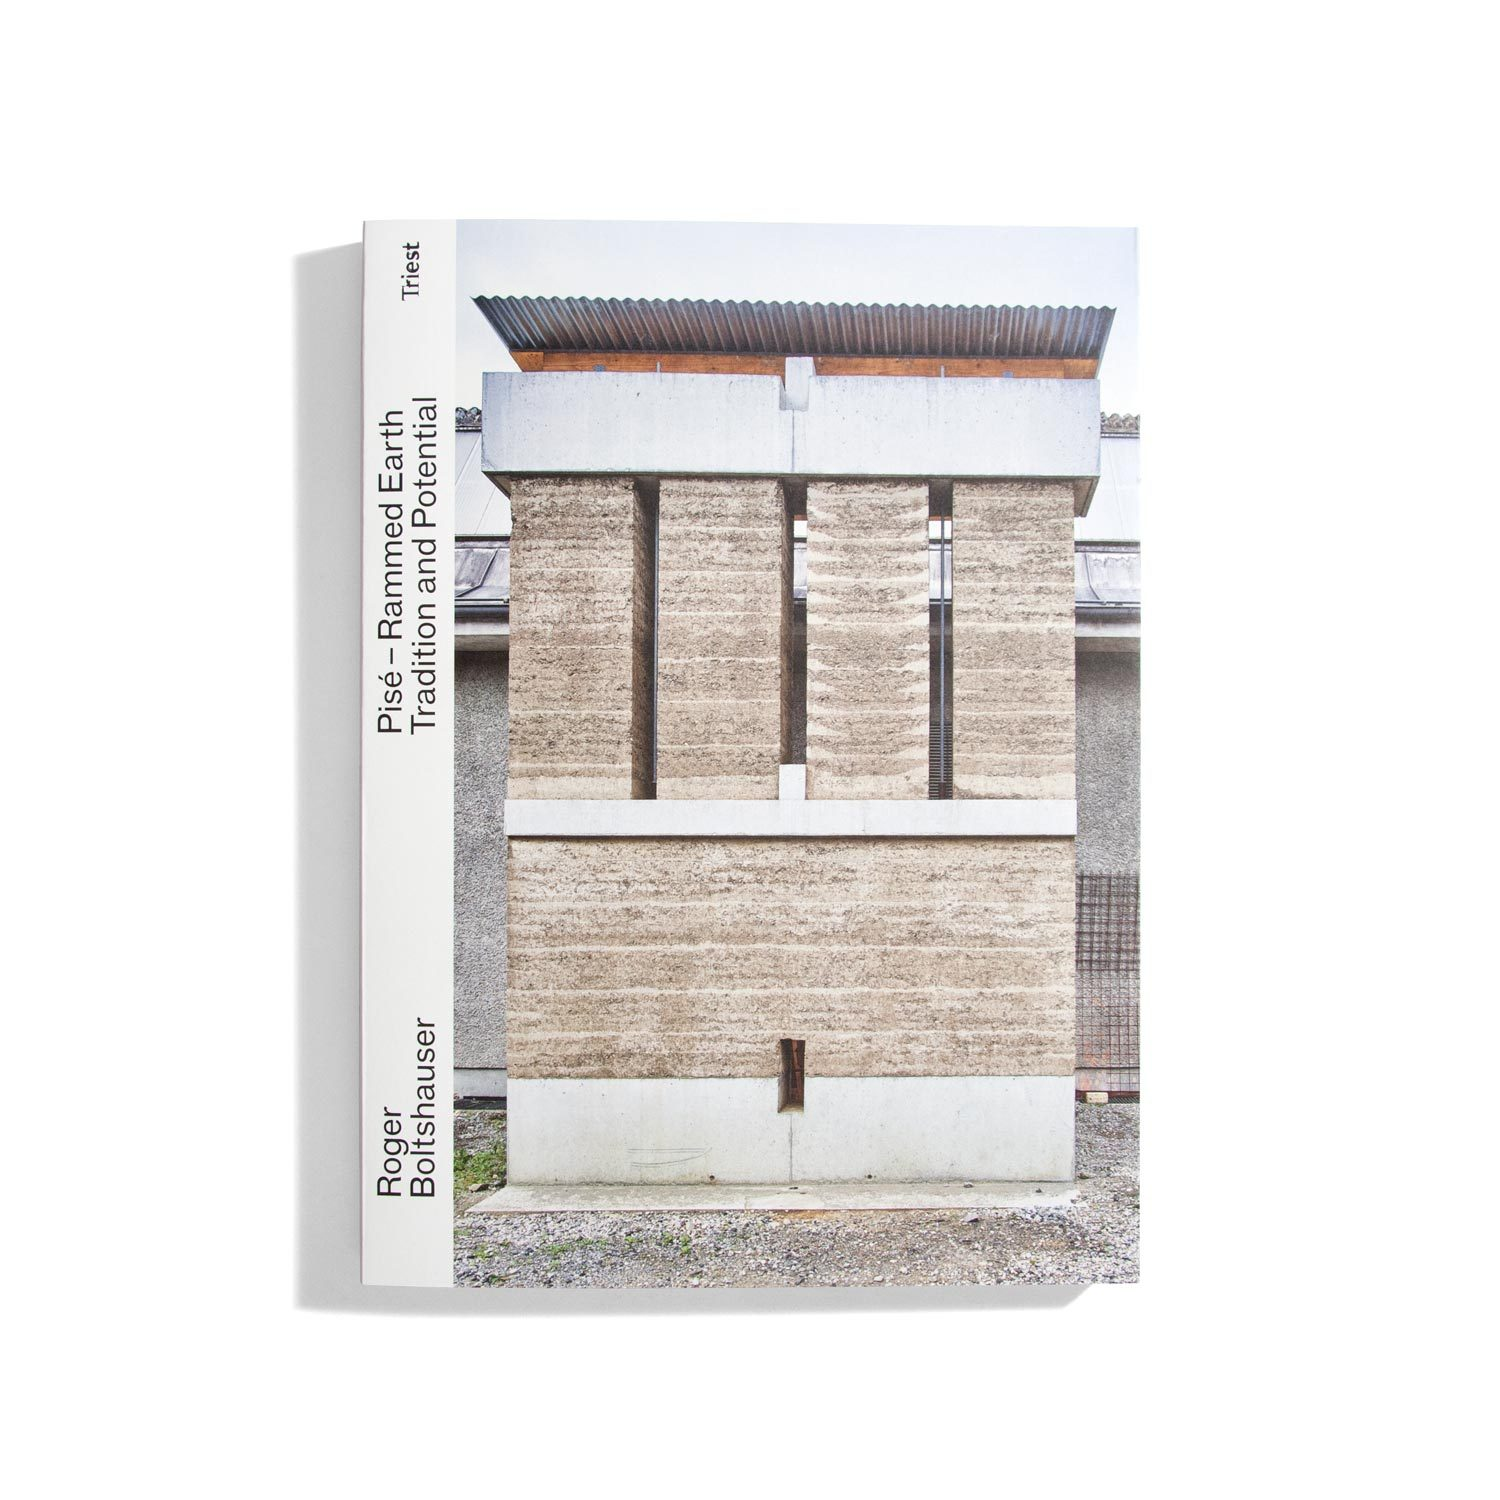 Pisé - Rammed Earth Tradition and Potential - Roger Boltshauser (EN)